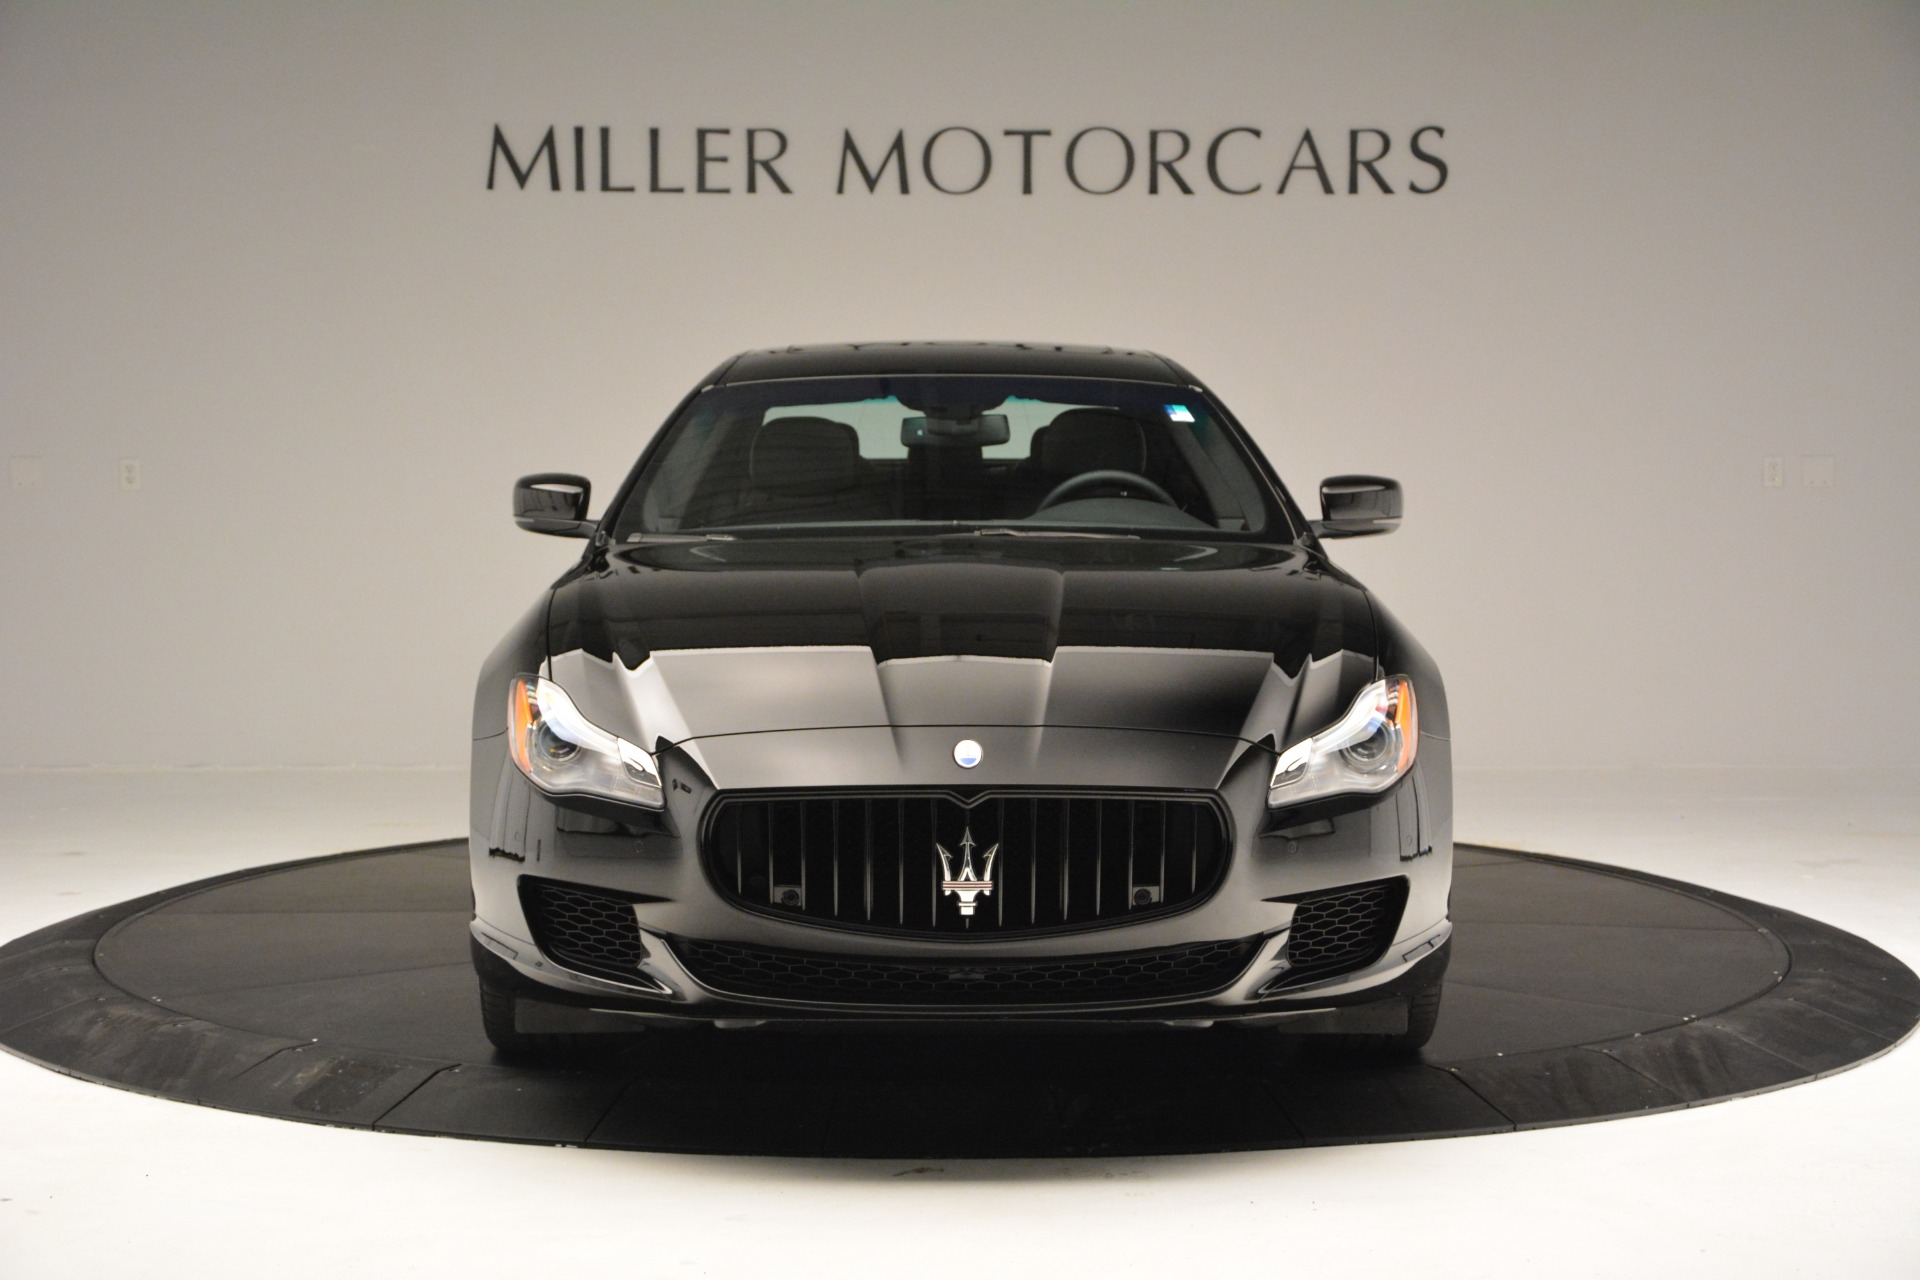 Used 2015 Maserati Quattroporte GTS For Sale In Westport, CT 2993_p12